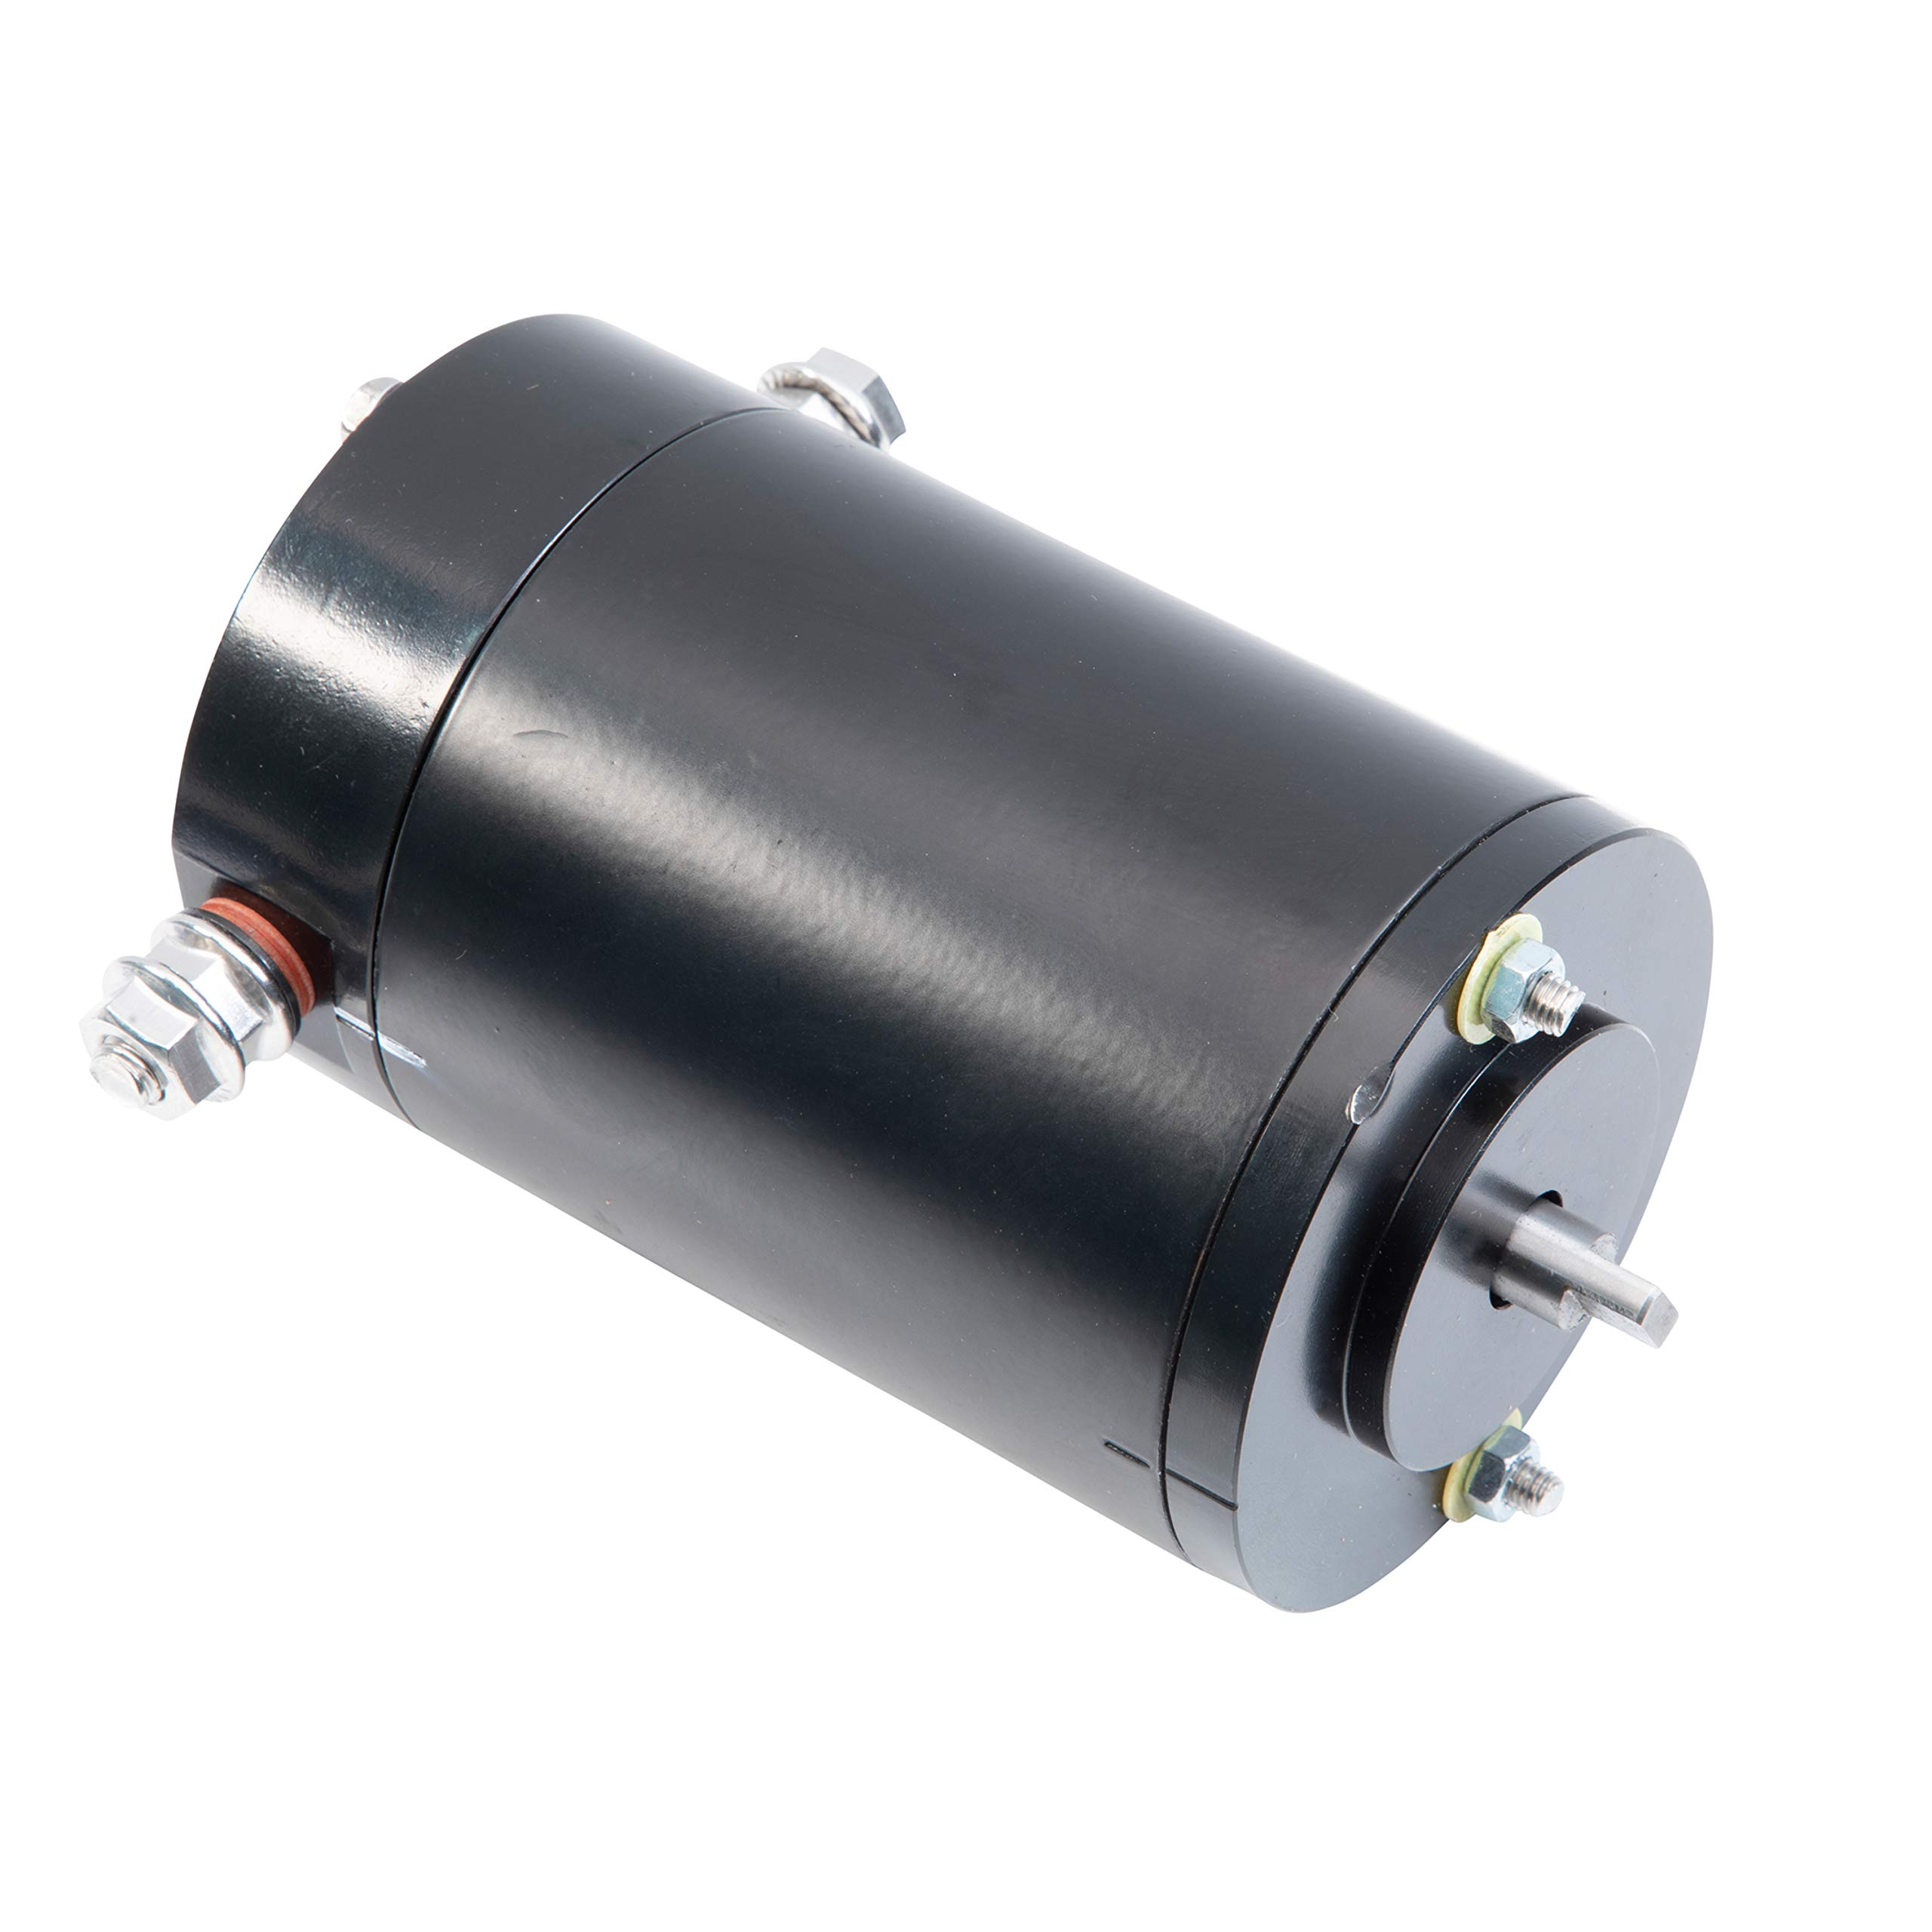 Lippert Components 167576 Hydraulic Pump Motor with Gasket for Various RV and Travel Trailer Slide-Out Systems by Lippert Components